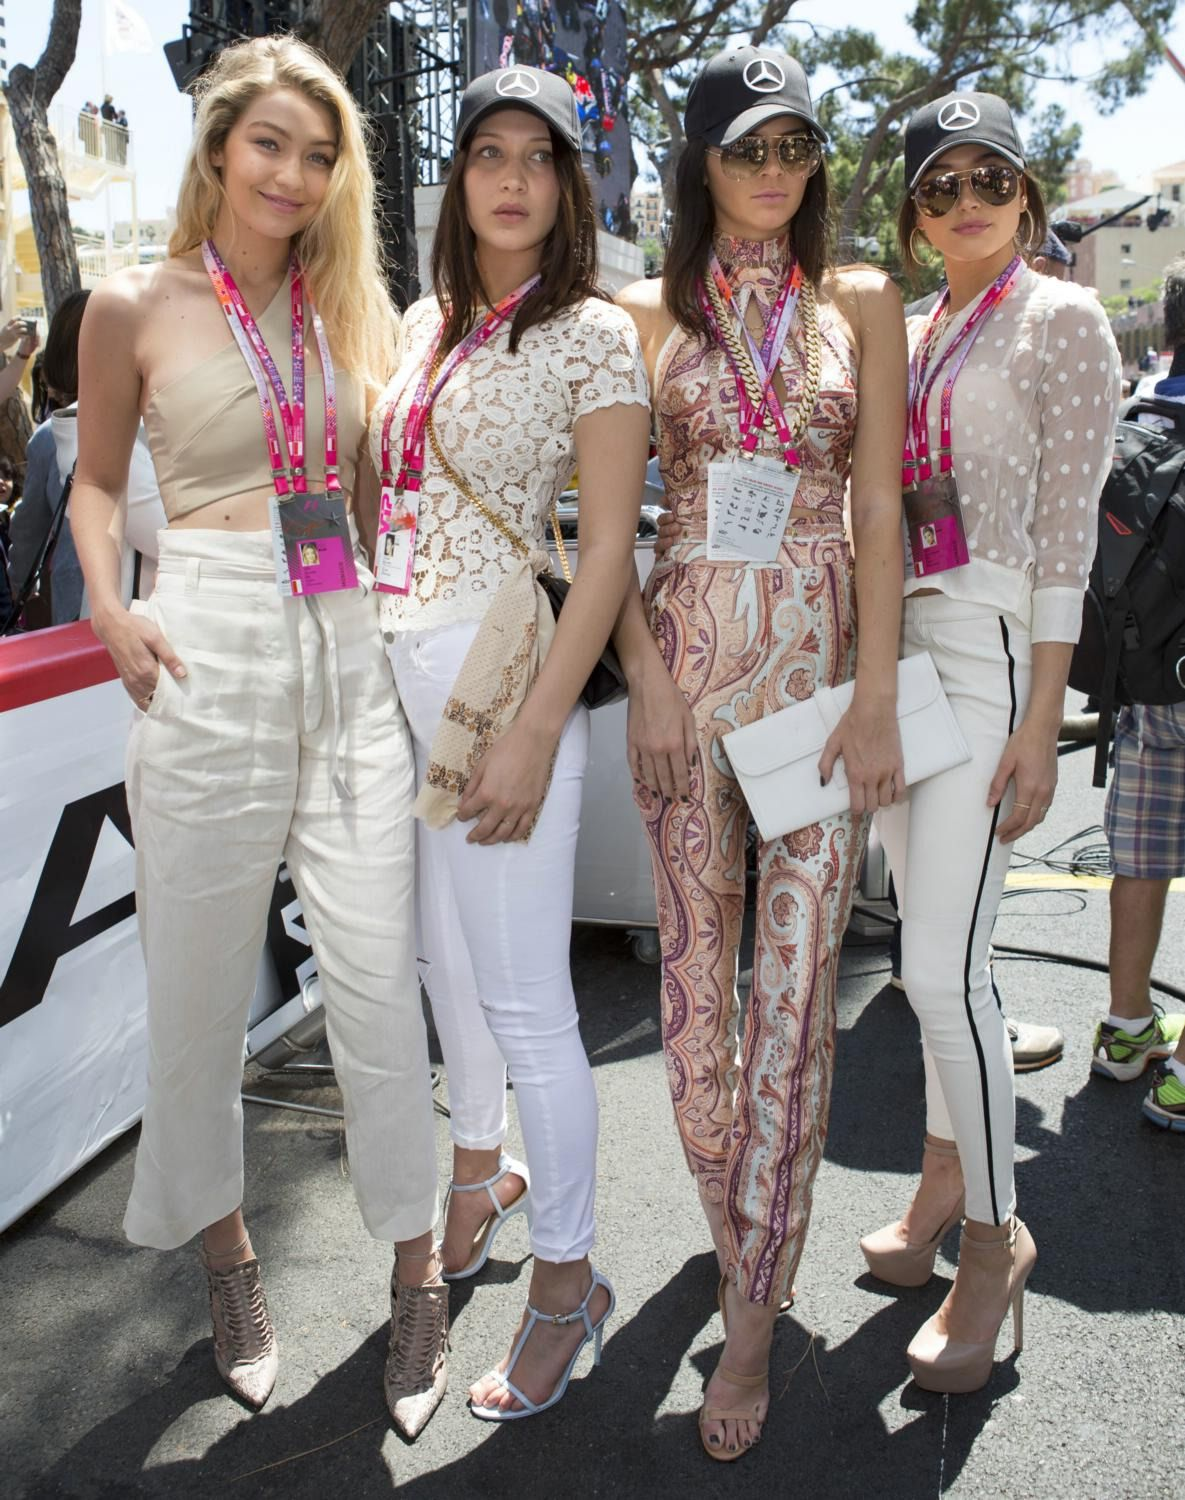 hadidnews: May 24: More of Gigi Hadid, Bella Hadid, Kendall Jenner and Hailey Baldwin at the F1 Grand Prix of Monaco, Monte-Carlo